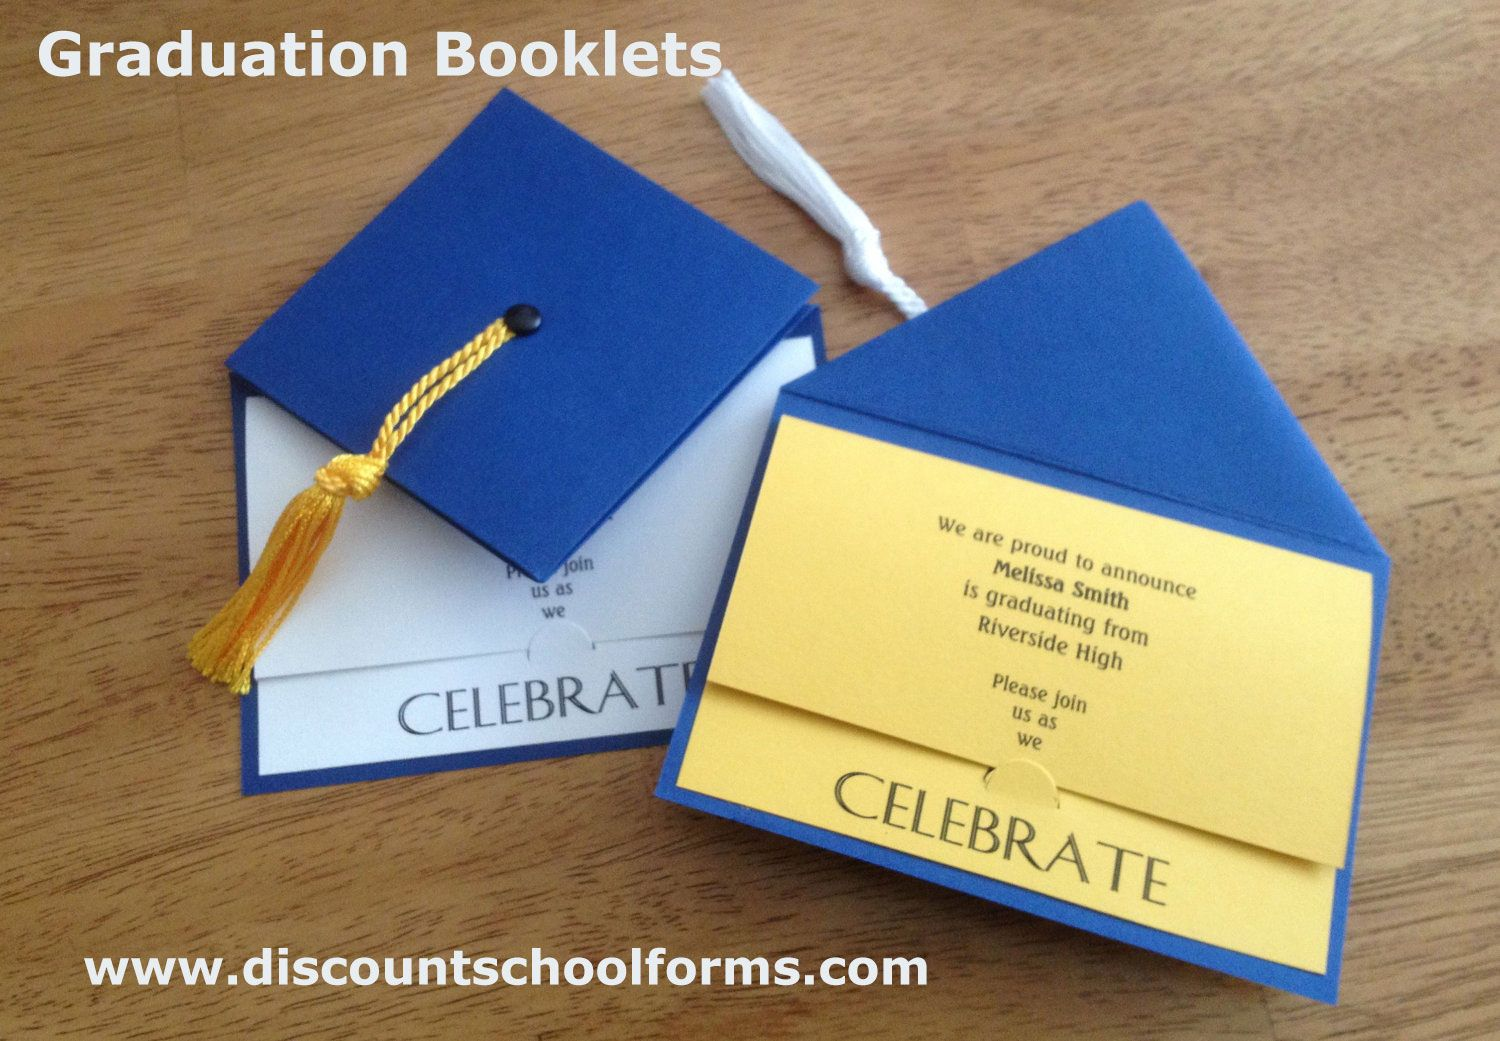 pin by discount school forms on graduation booklet